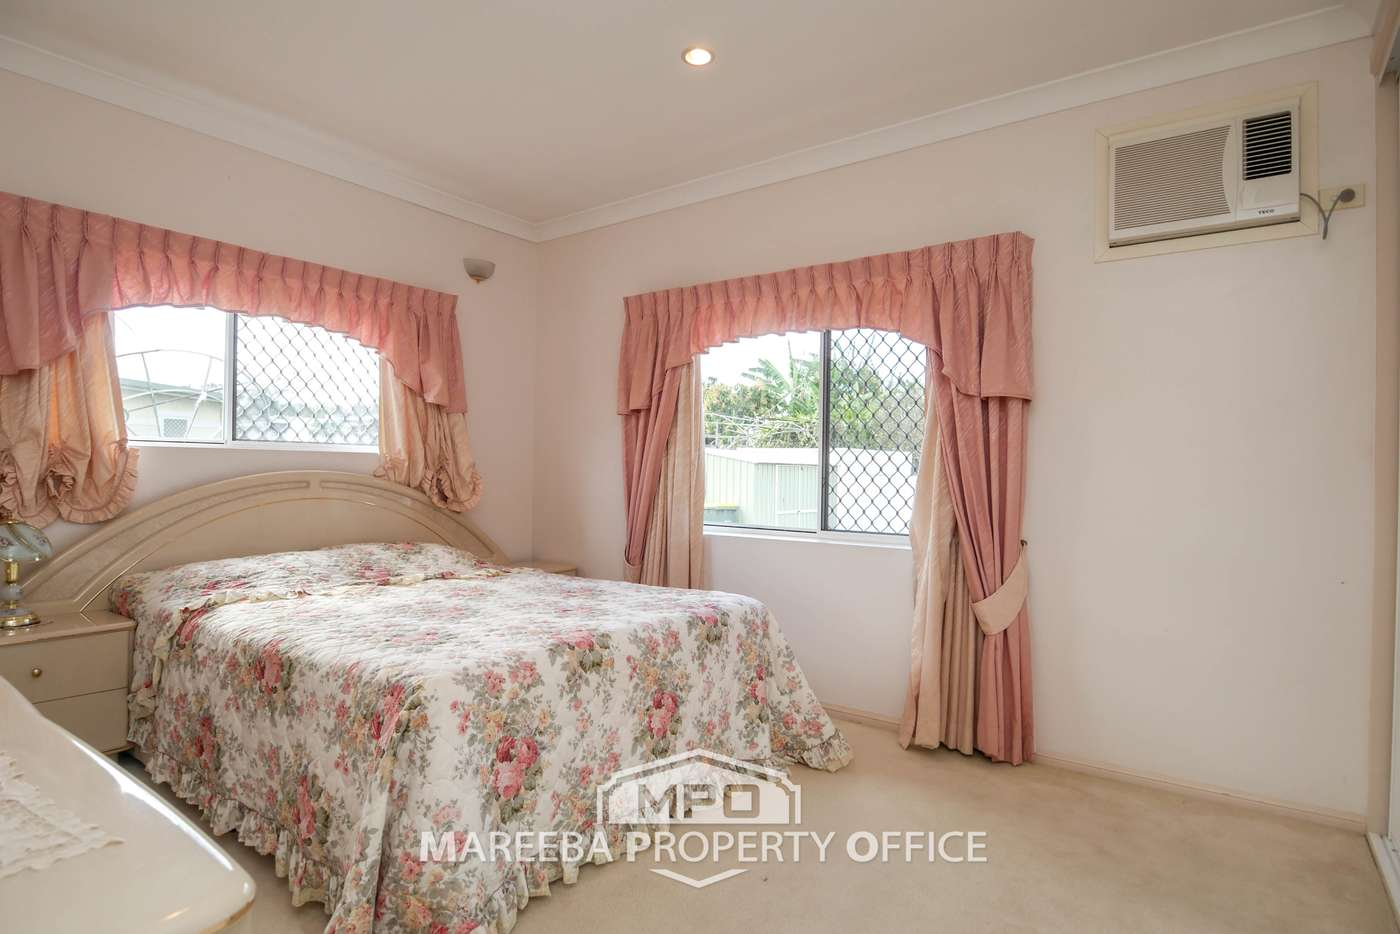 Seventh view of Homely house listing, 20 Palm Close, Mareeba QLD 4880